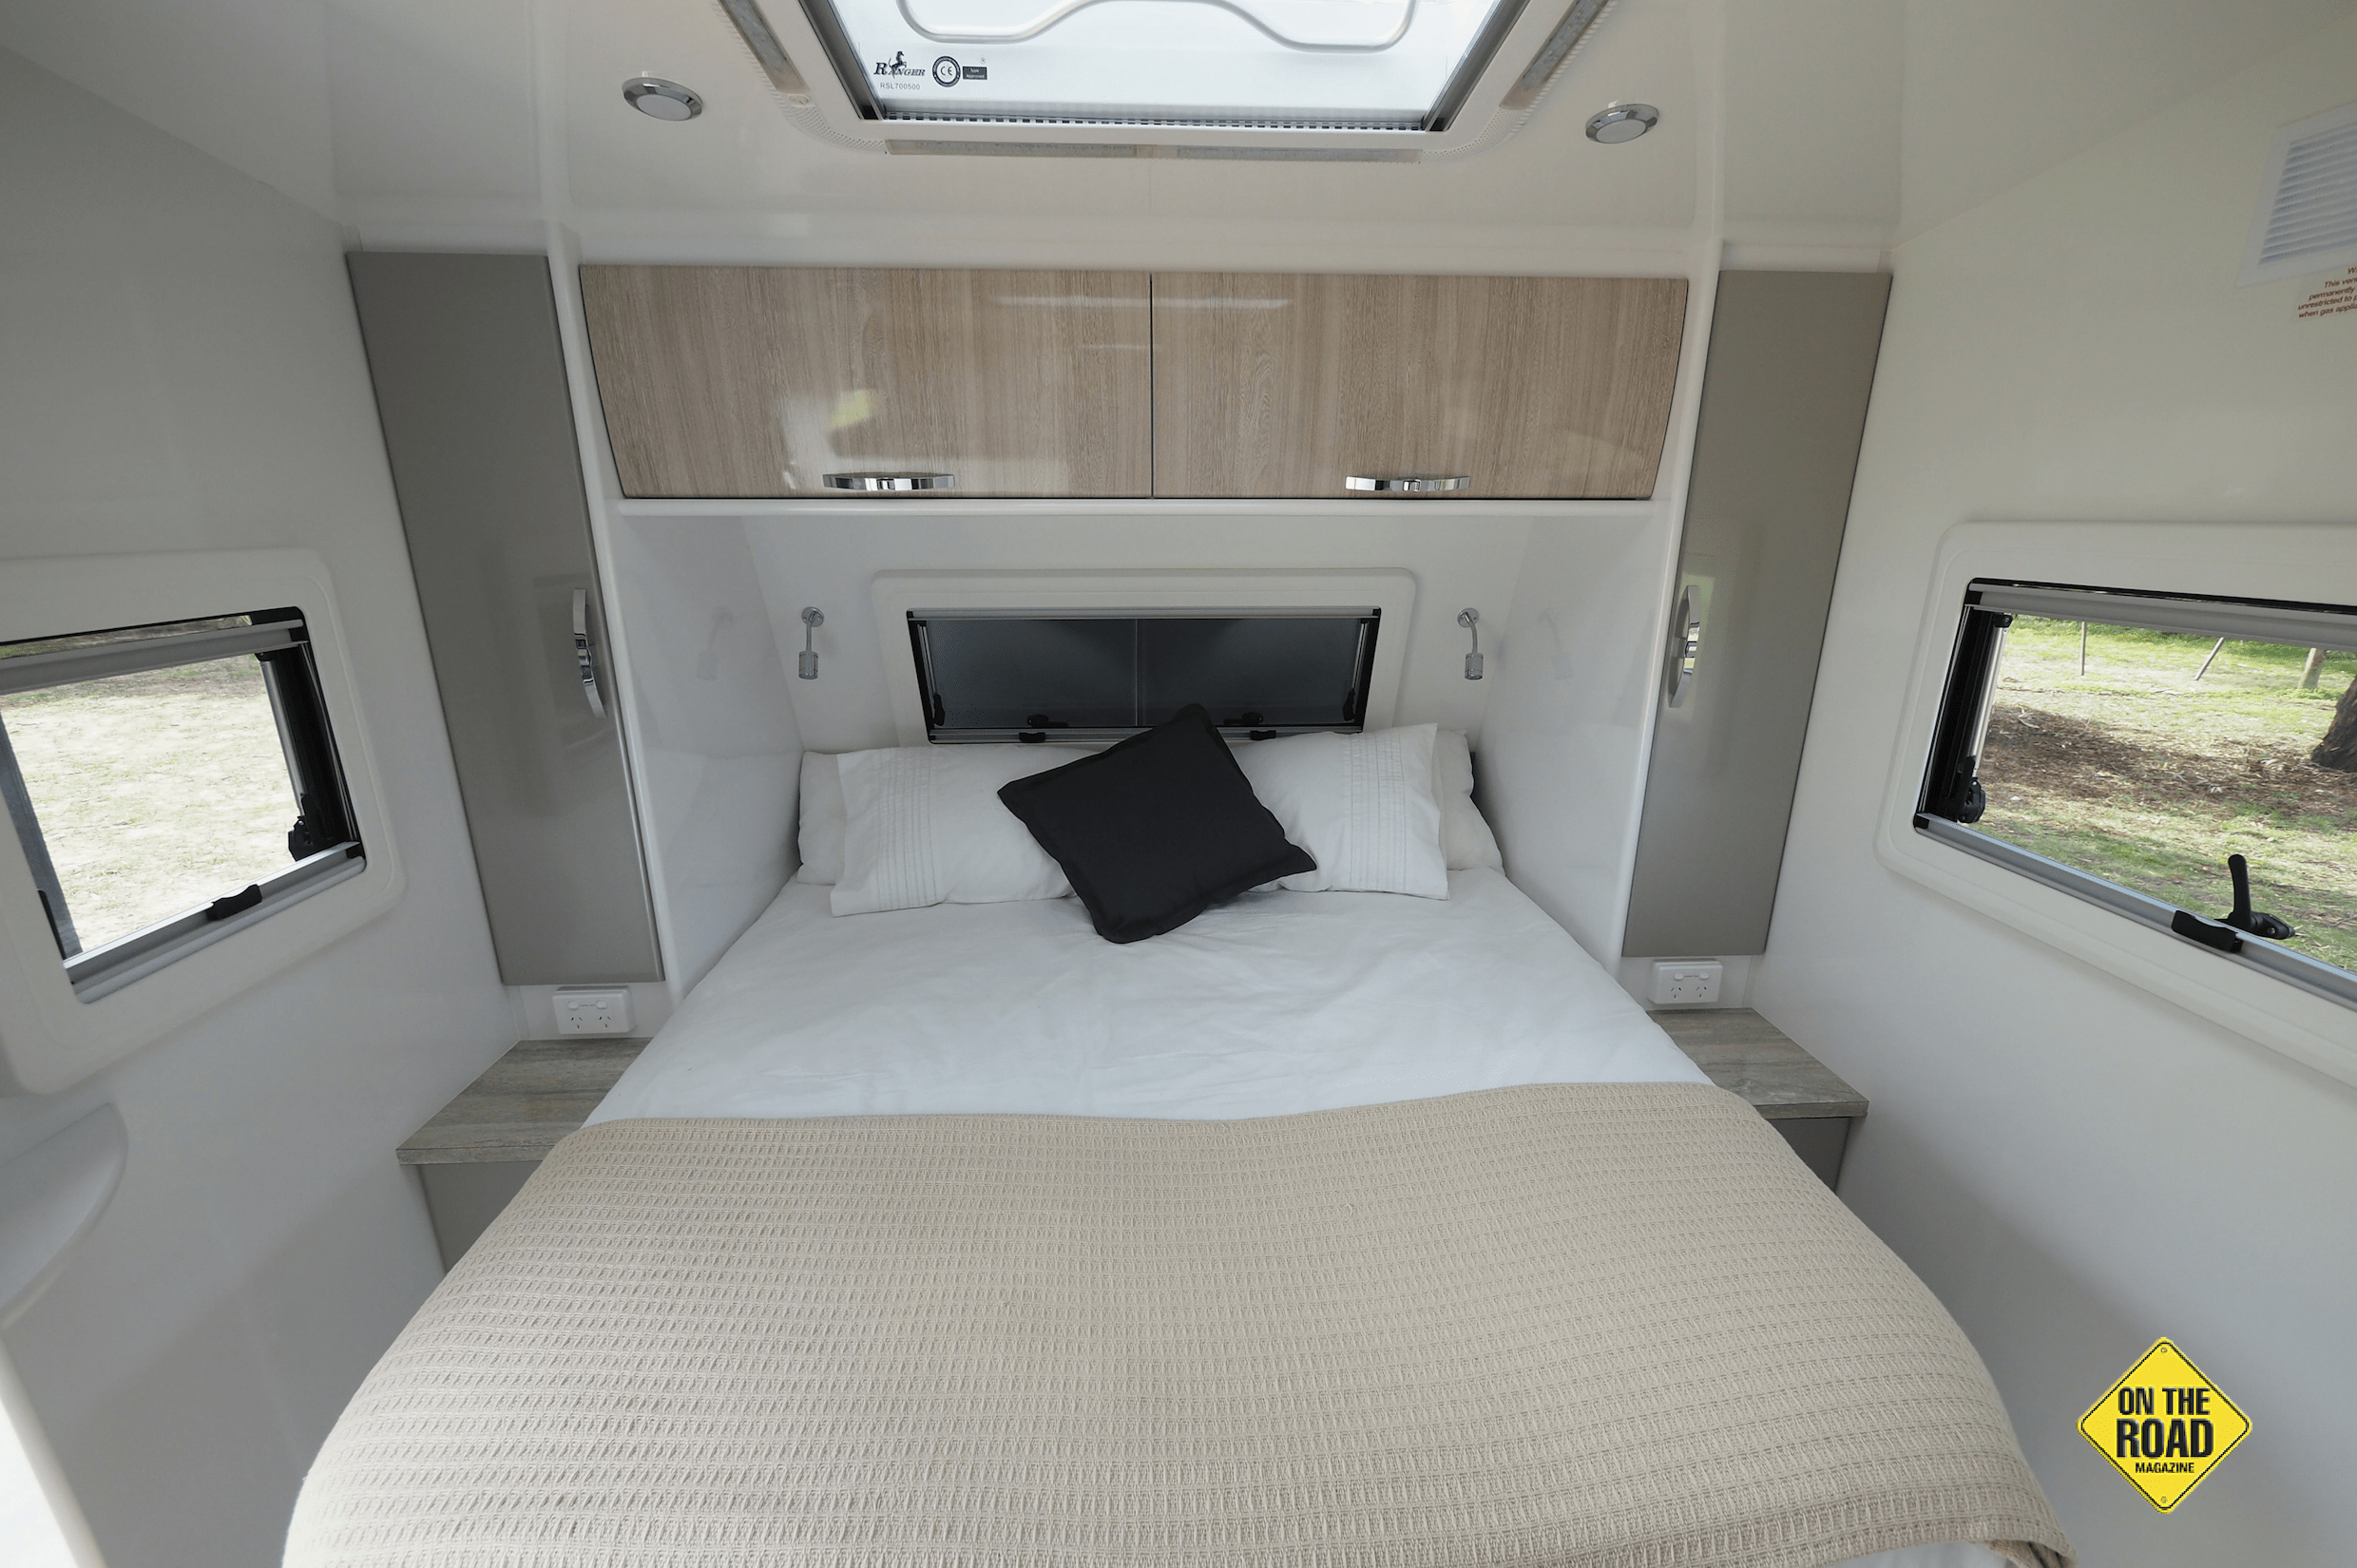 The queensize bed sits at the rear of the caravan.